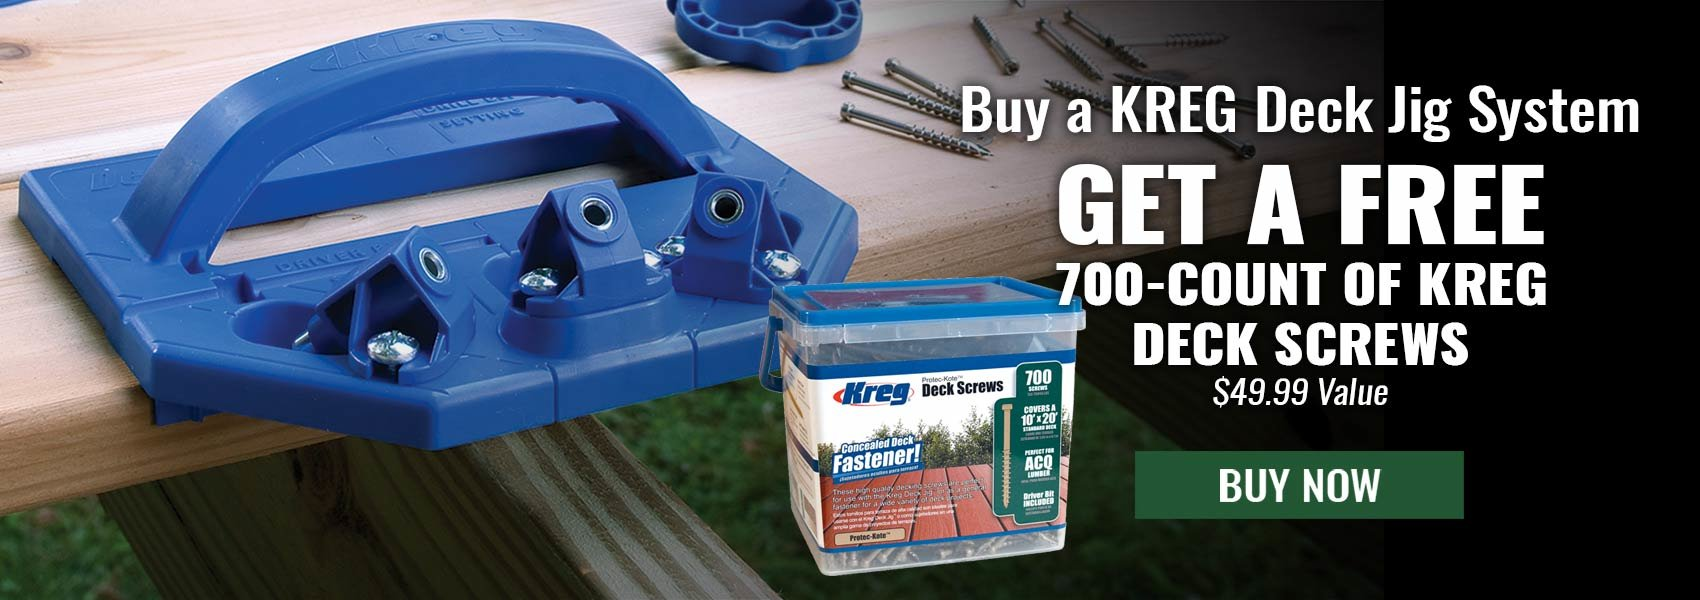 Kreg Deck Jig Special Offer